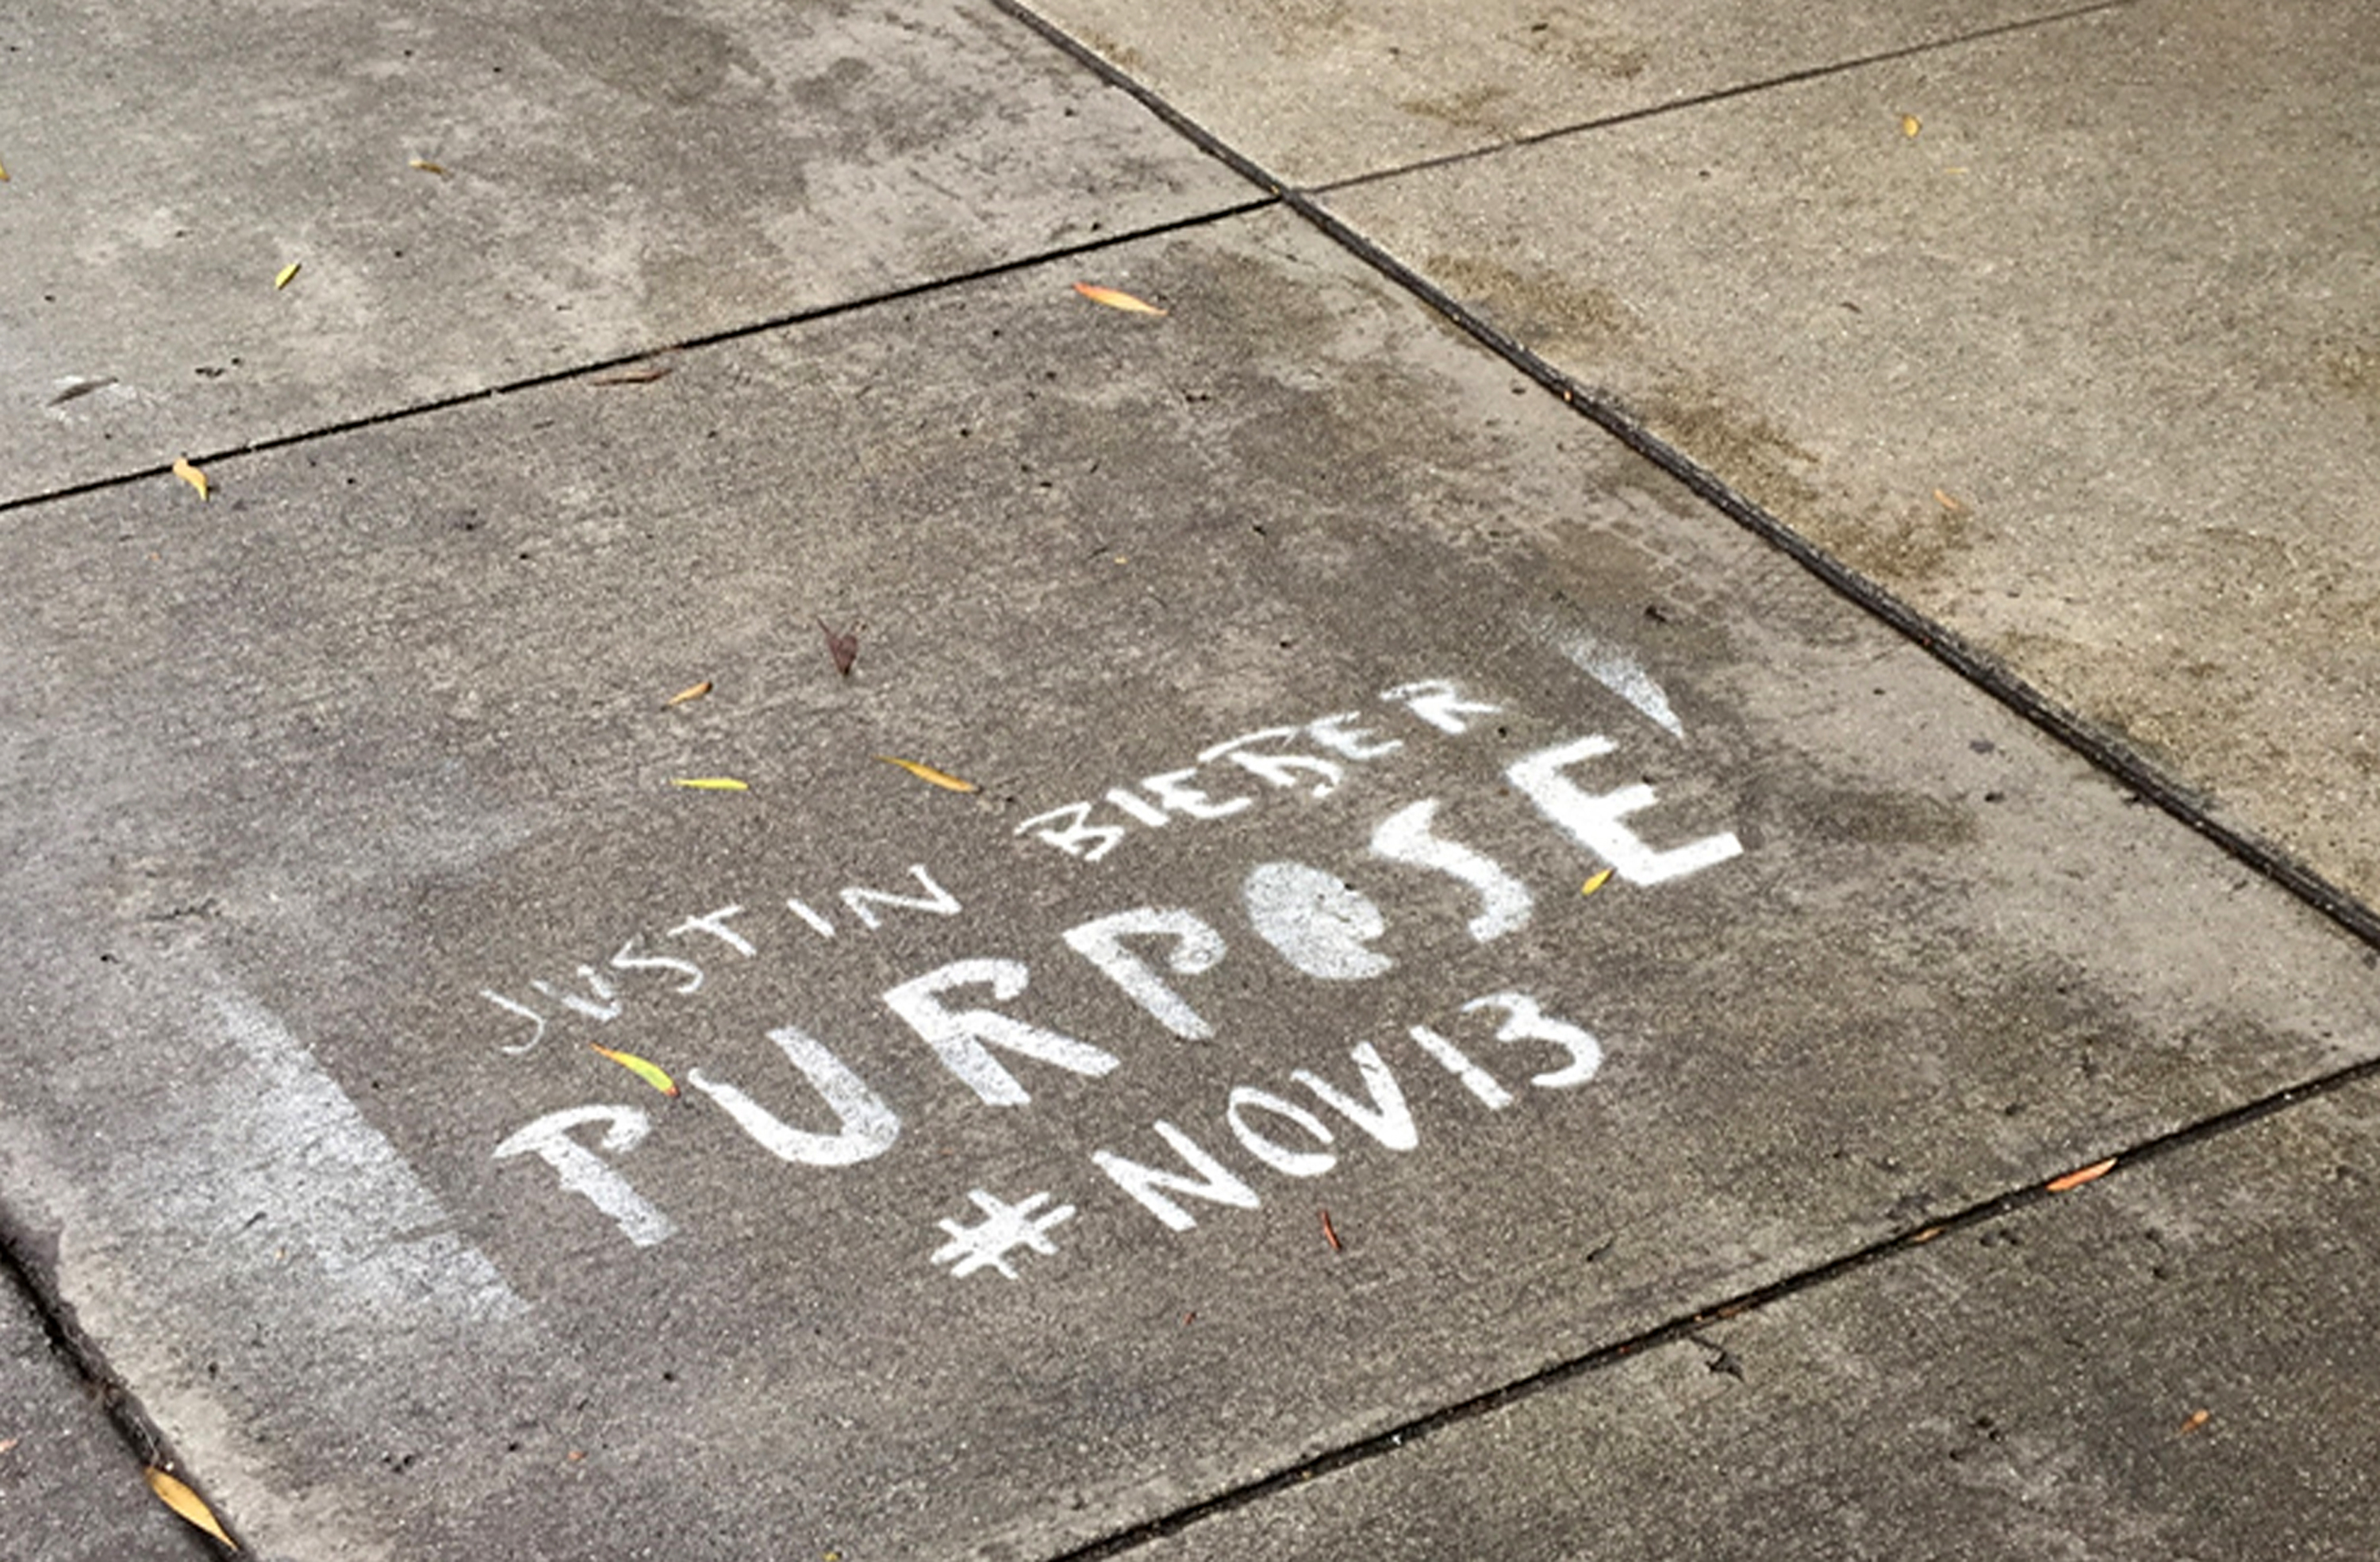 Justin Bieber graffiti sprayed onto a San Francisco street on Dec. 26, 2015.